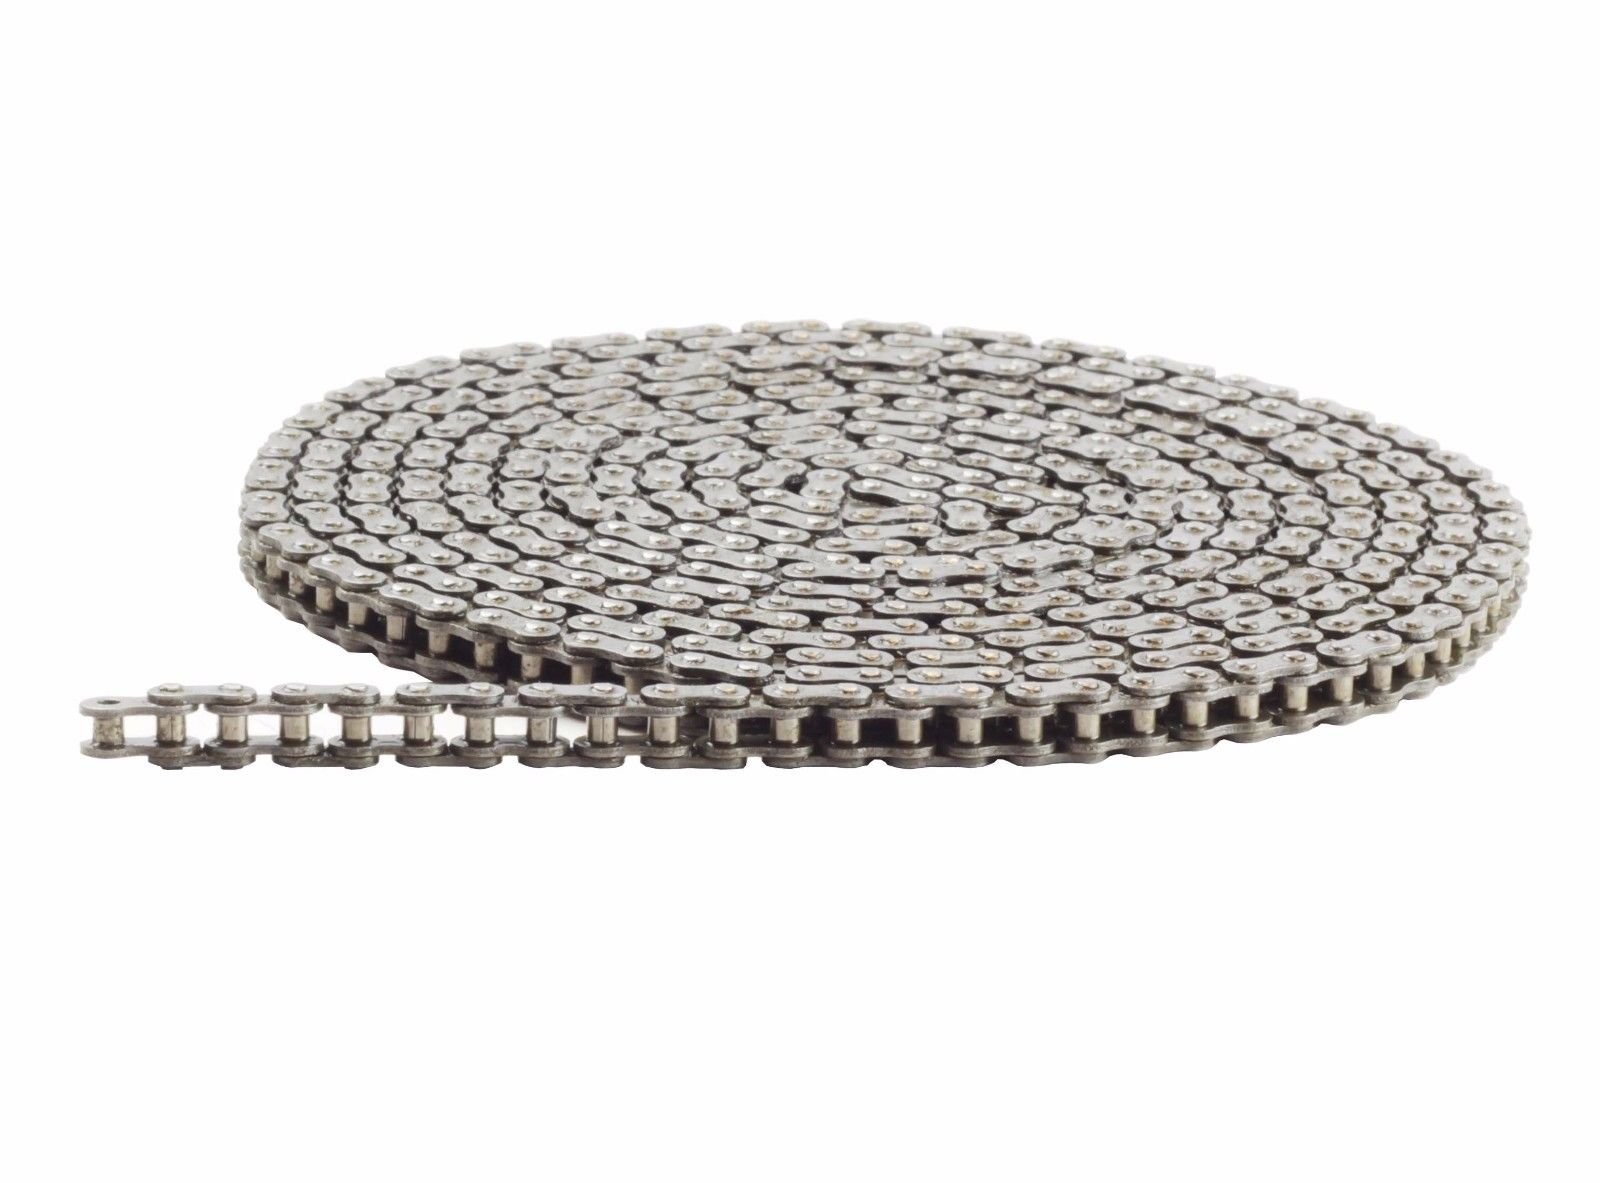 35H Heavy Duty Roller Chain 10 Feet with 1 Connecting Link, 35H Chain